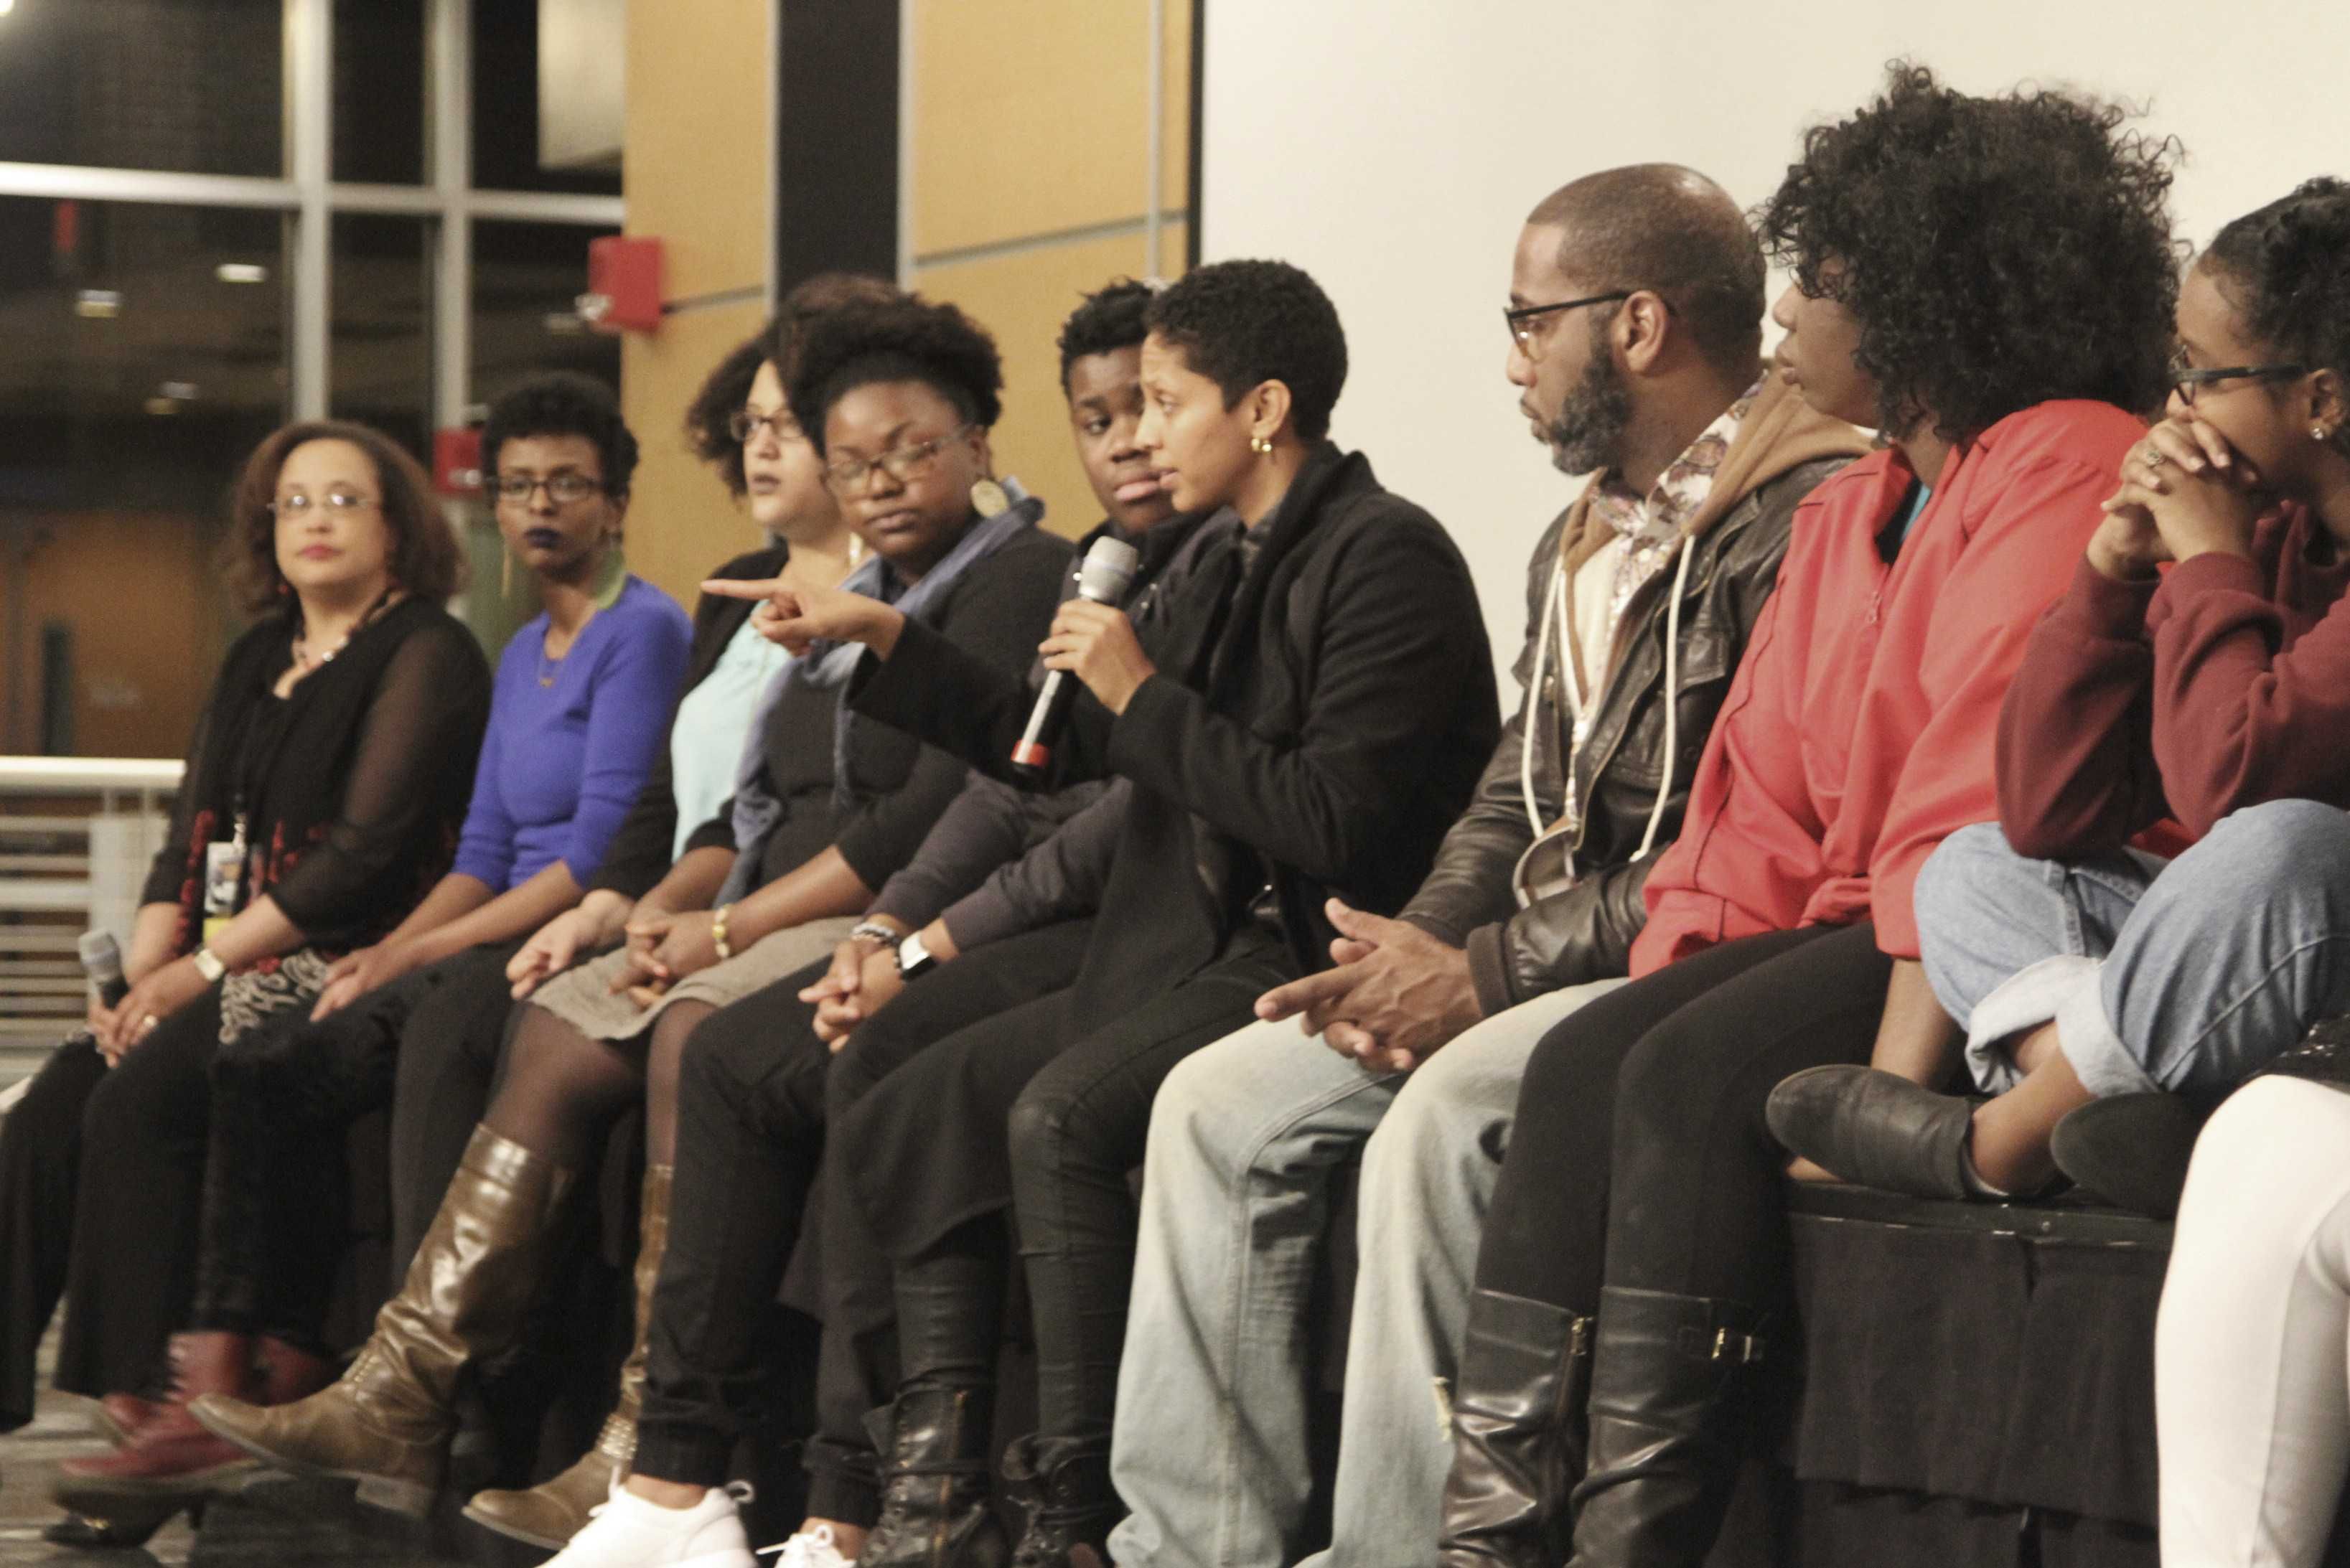 Black Lives Matter Toronto organizer visits campus as LCB speaker